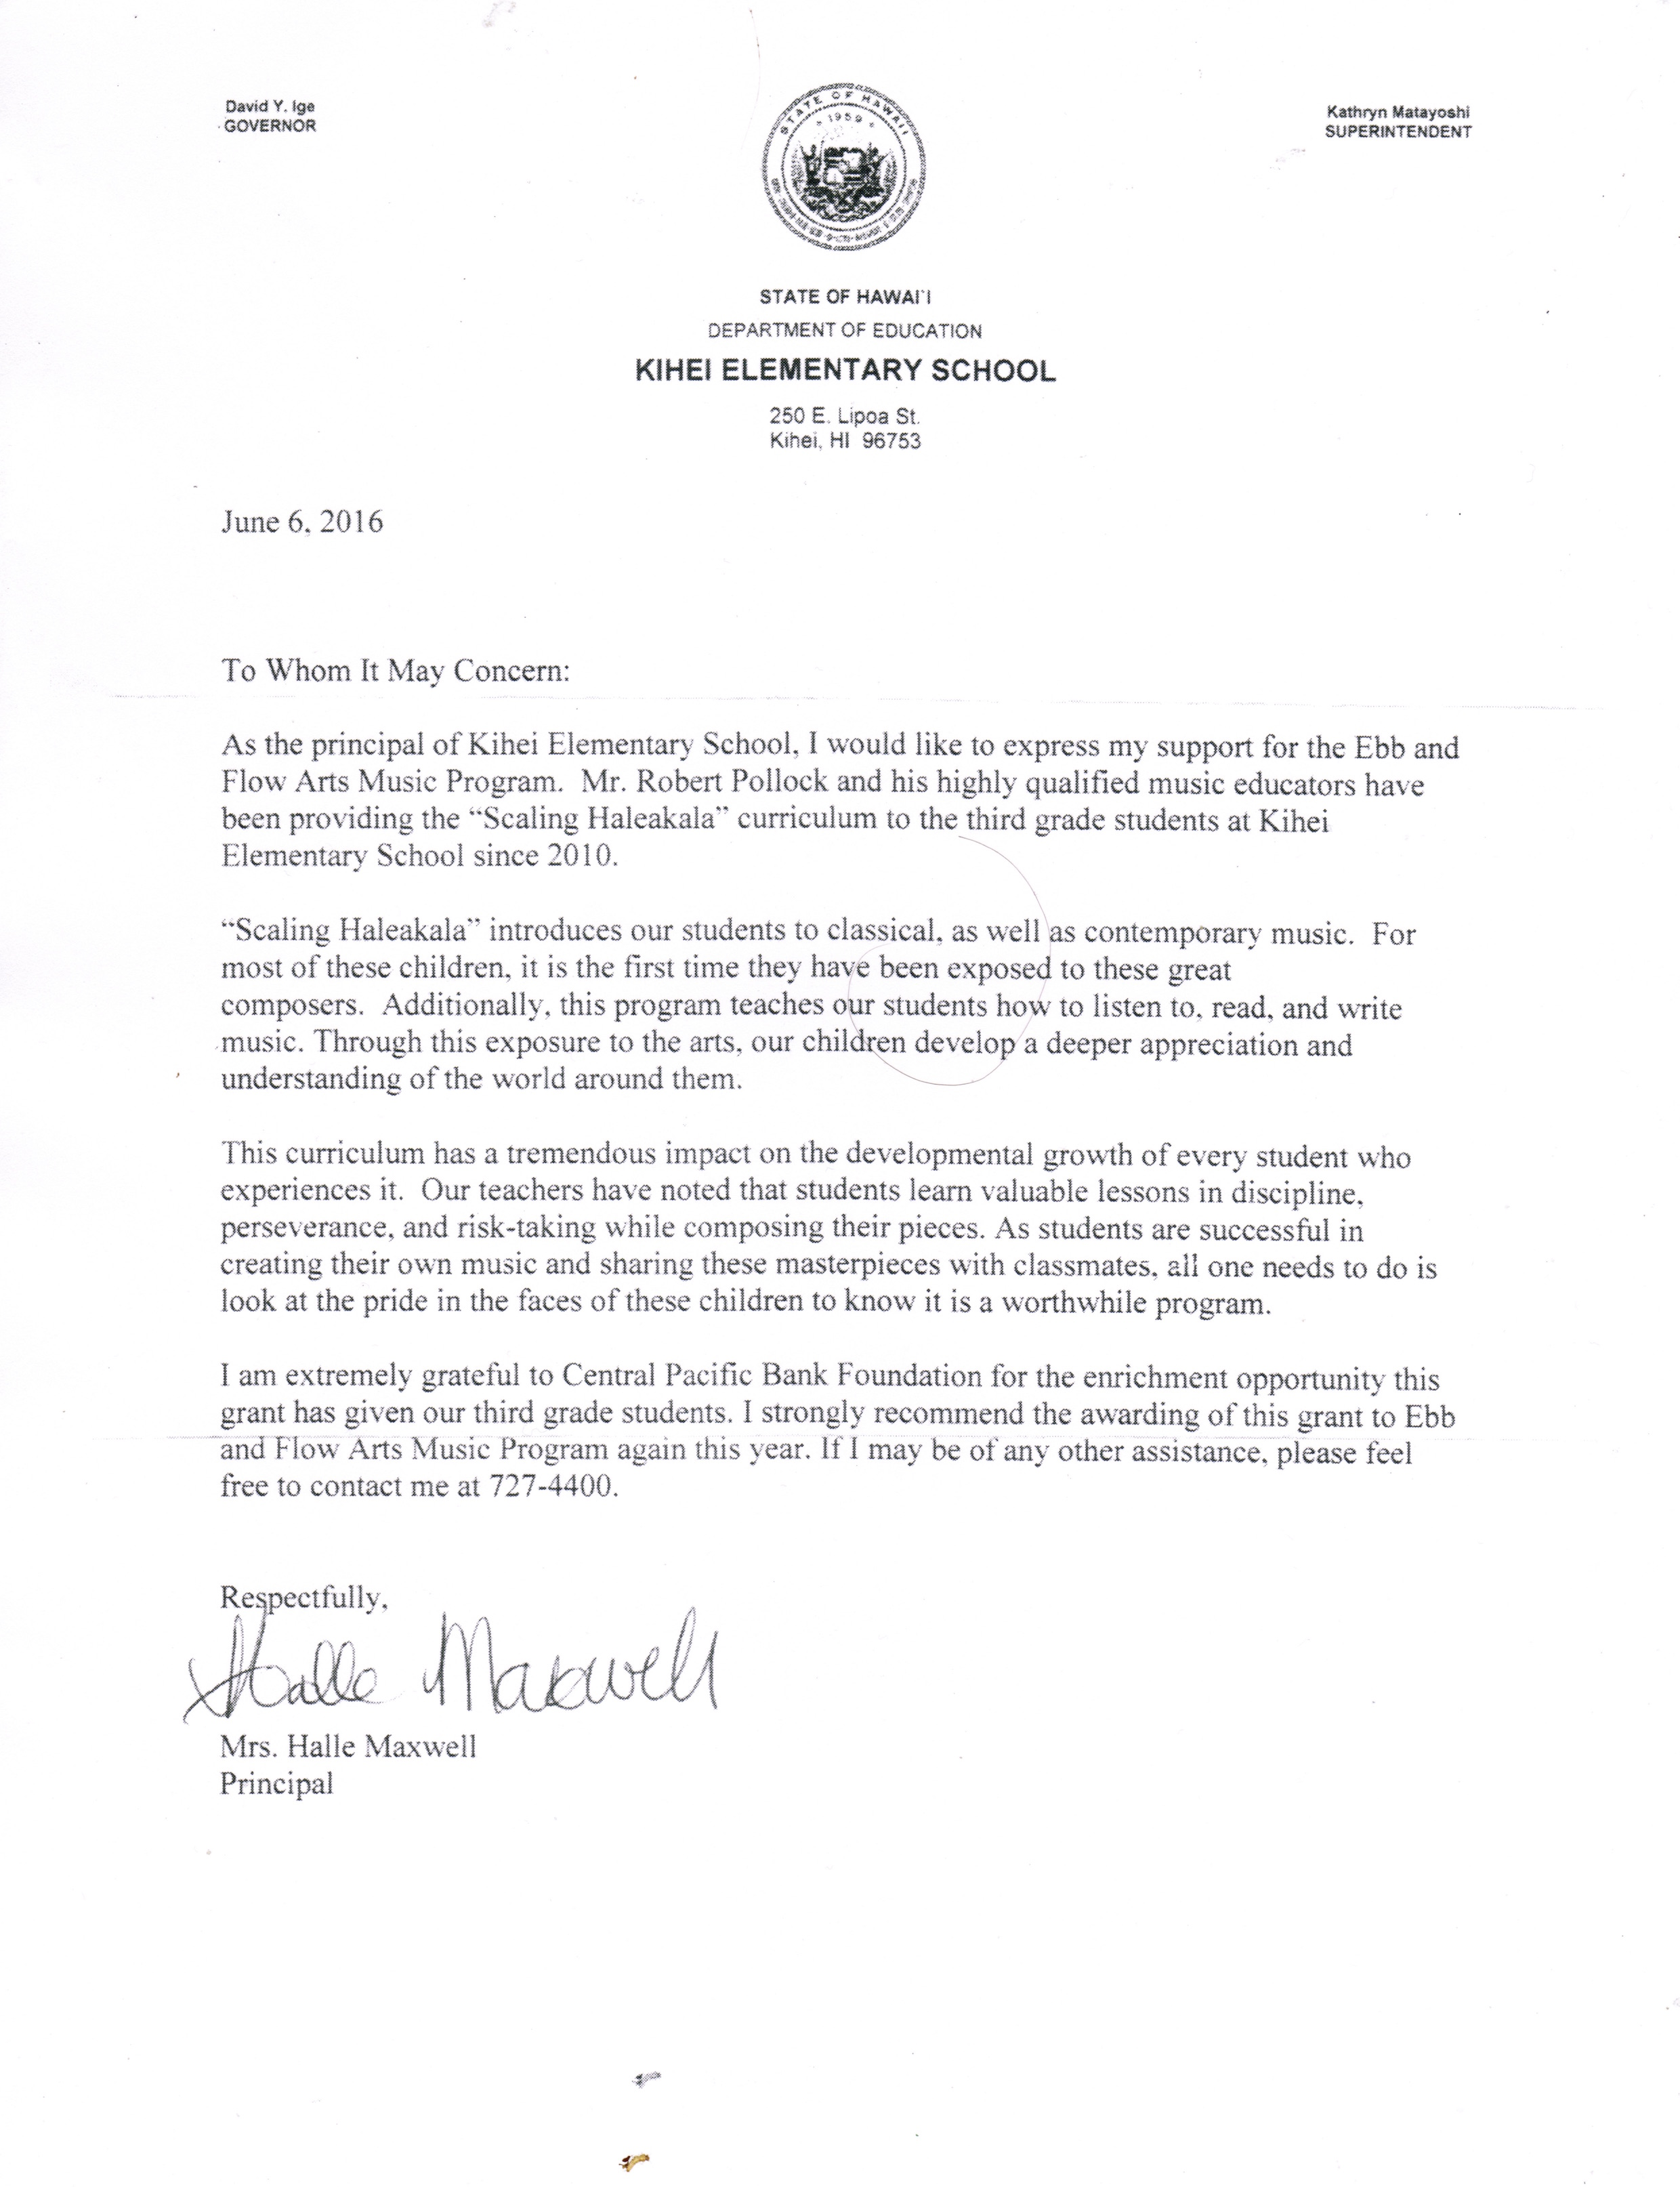 letter-from-maxwell